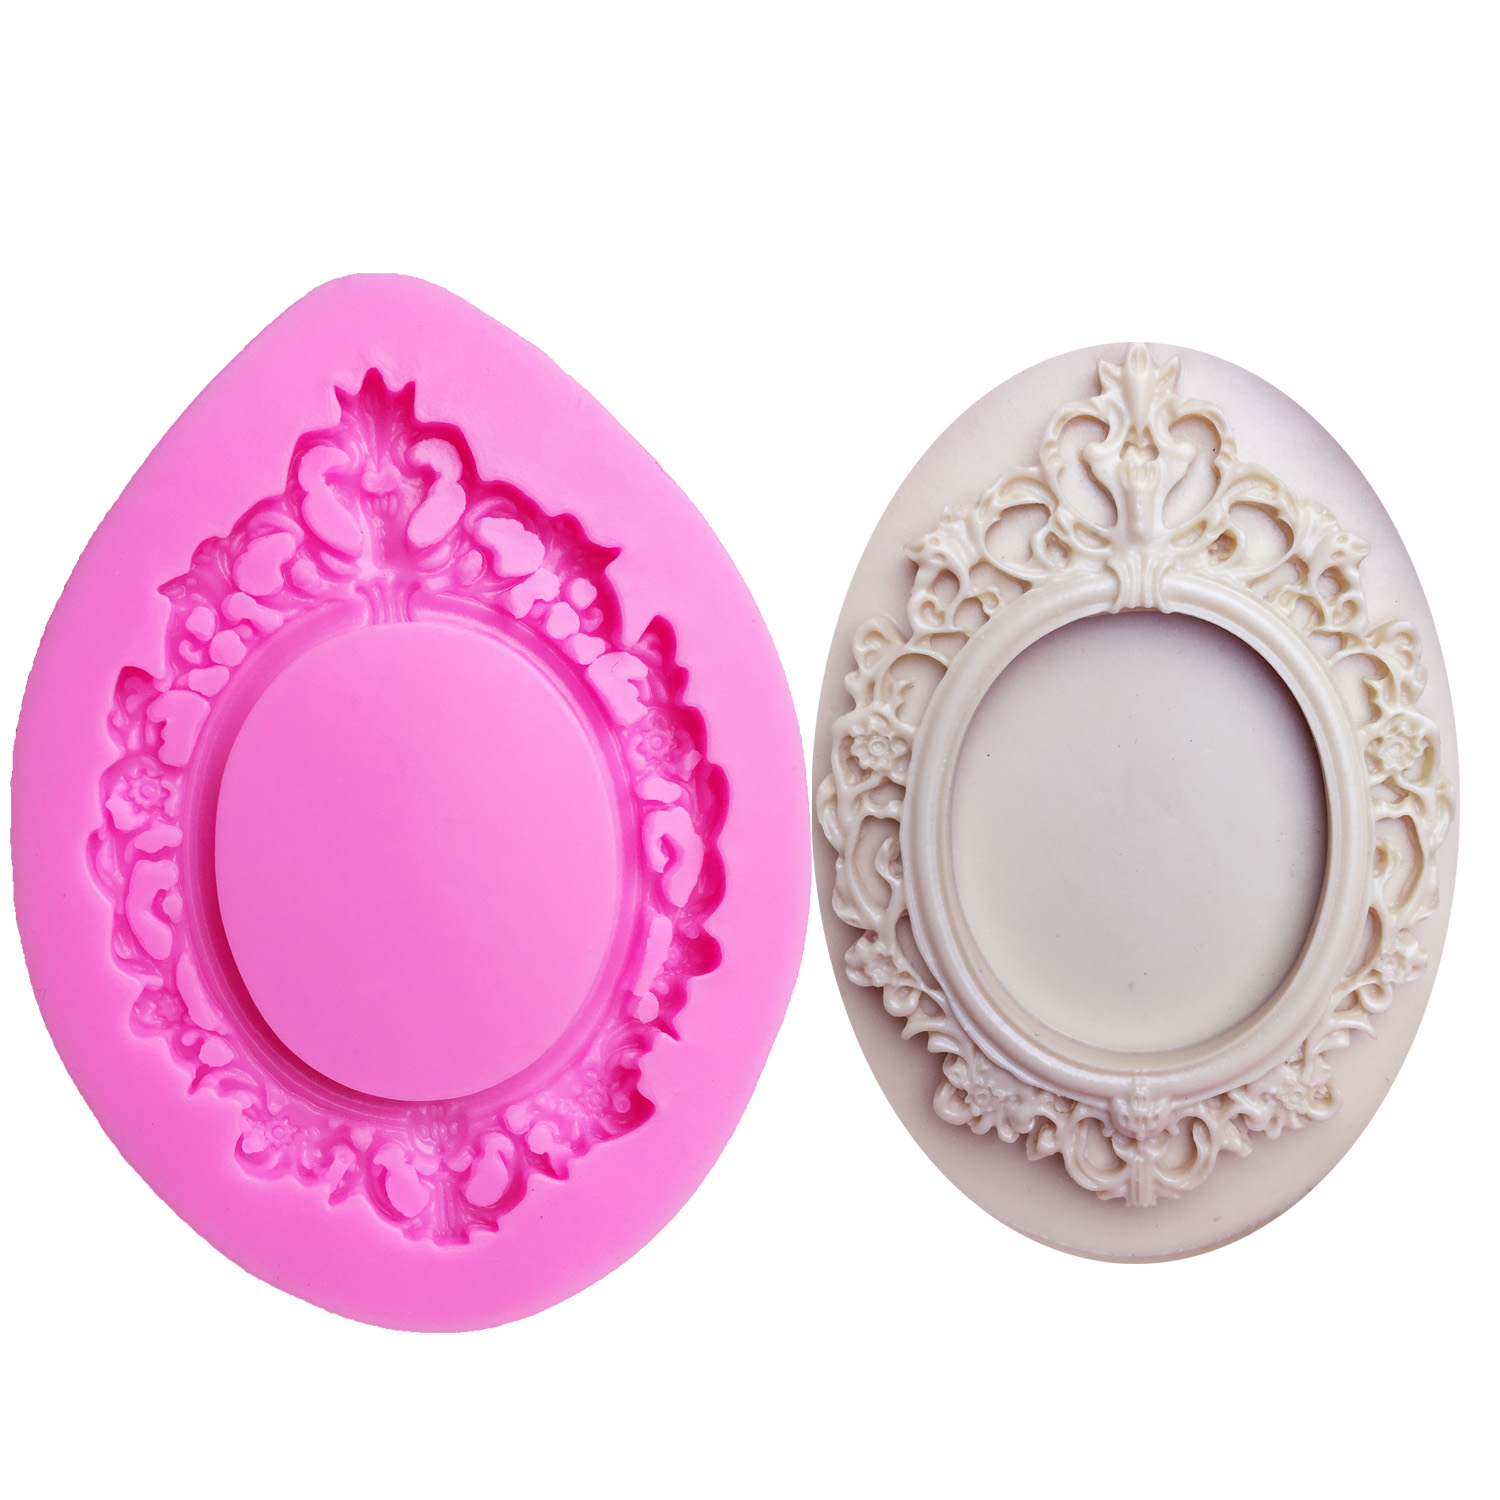 M0611 Frame silicone mold fondant mould cake decorating tools chocolate gumpaste molds